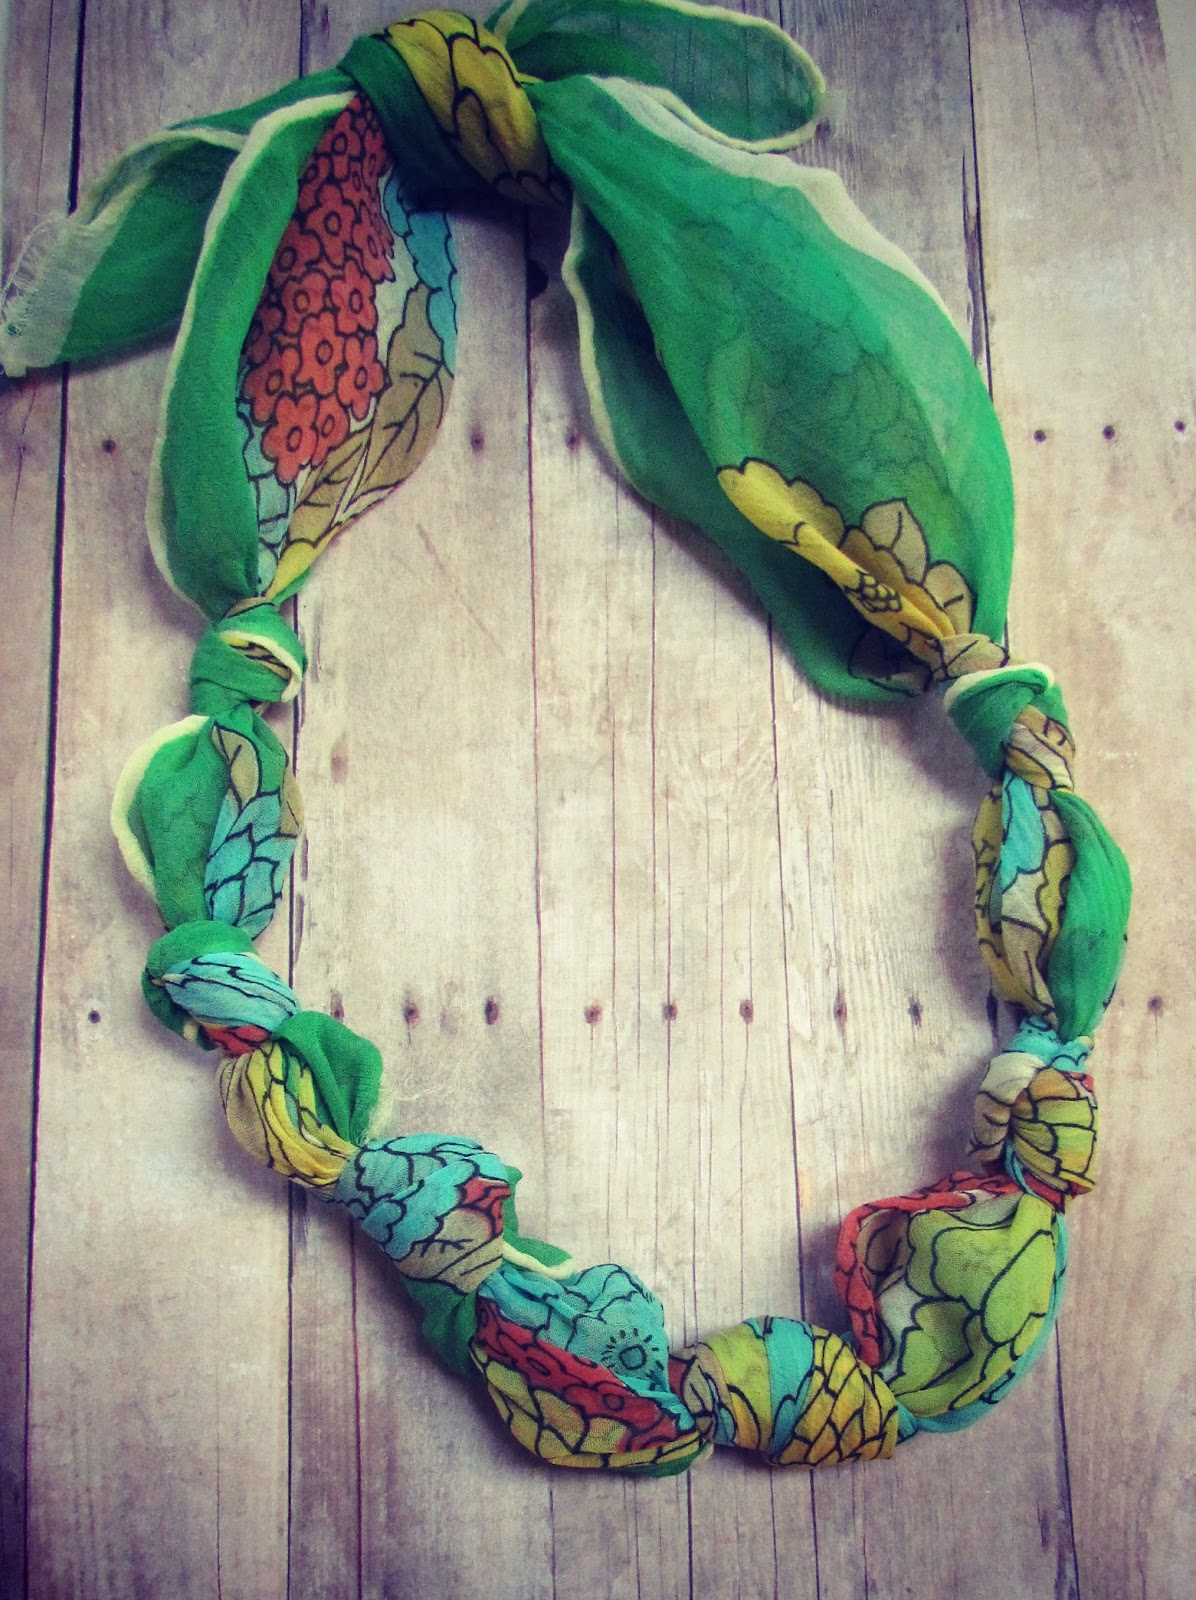 twobutterflies: Easy Necklace: No Sew, No Beading, No Tools Required